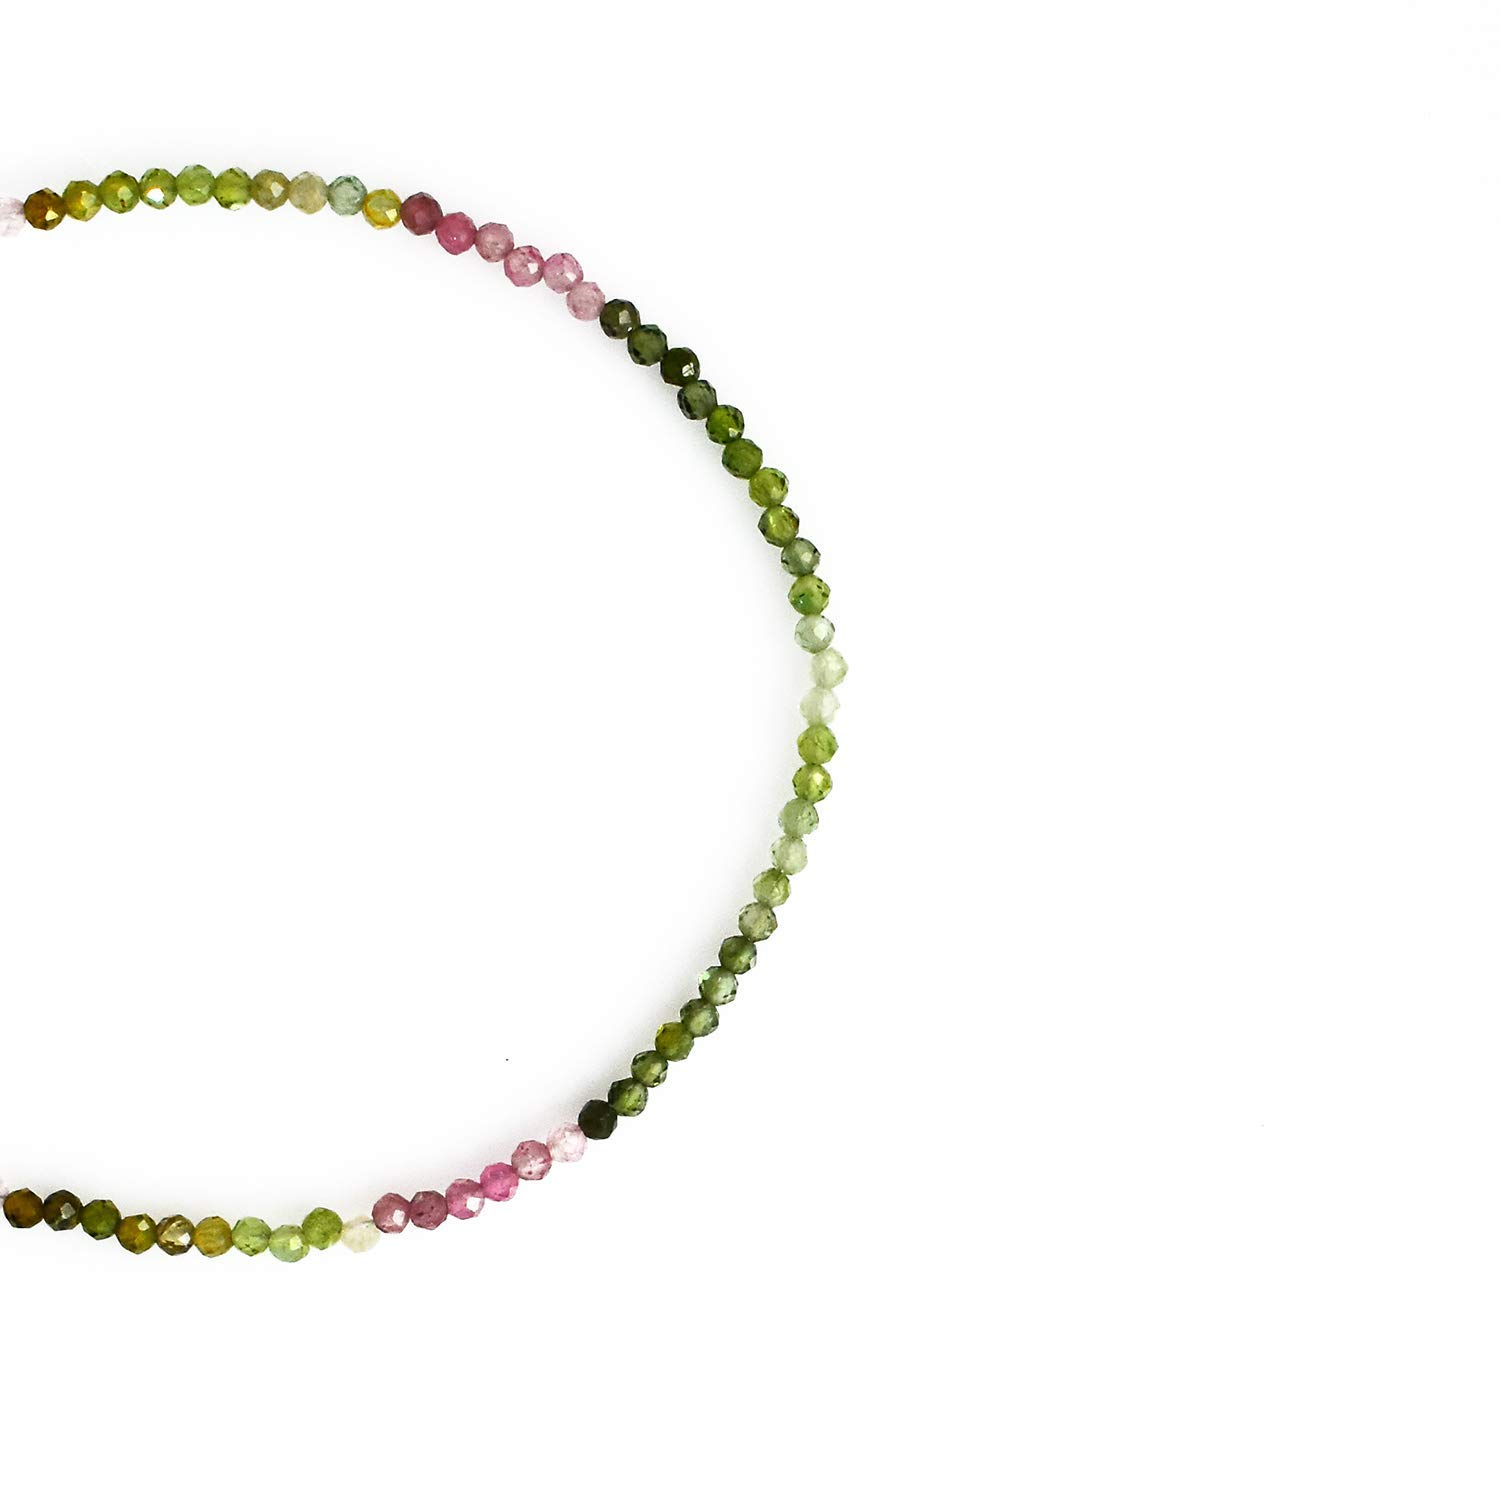 Birthday Energy Healing Crystals Faceted Beads Gift for Her Gemstone Jewelry 8 inch AAA+ Quality Gempires Natural Multi Tourmaline Beads Bracelet